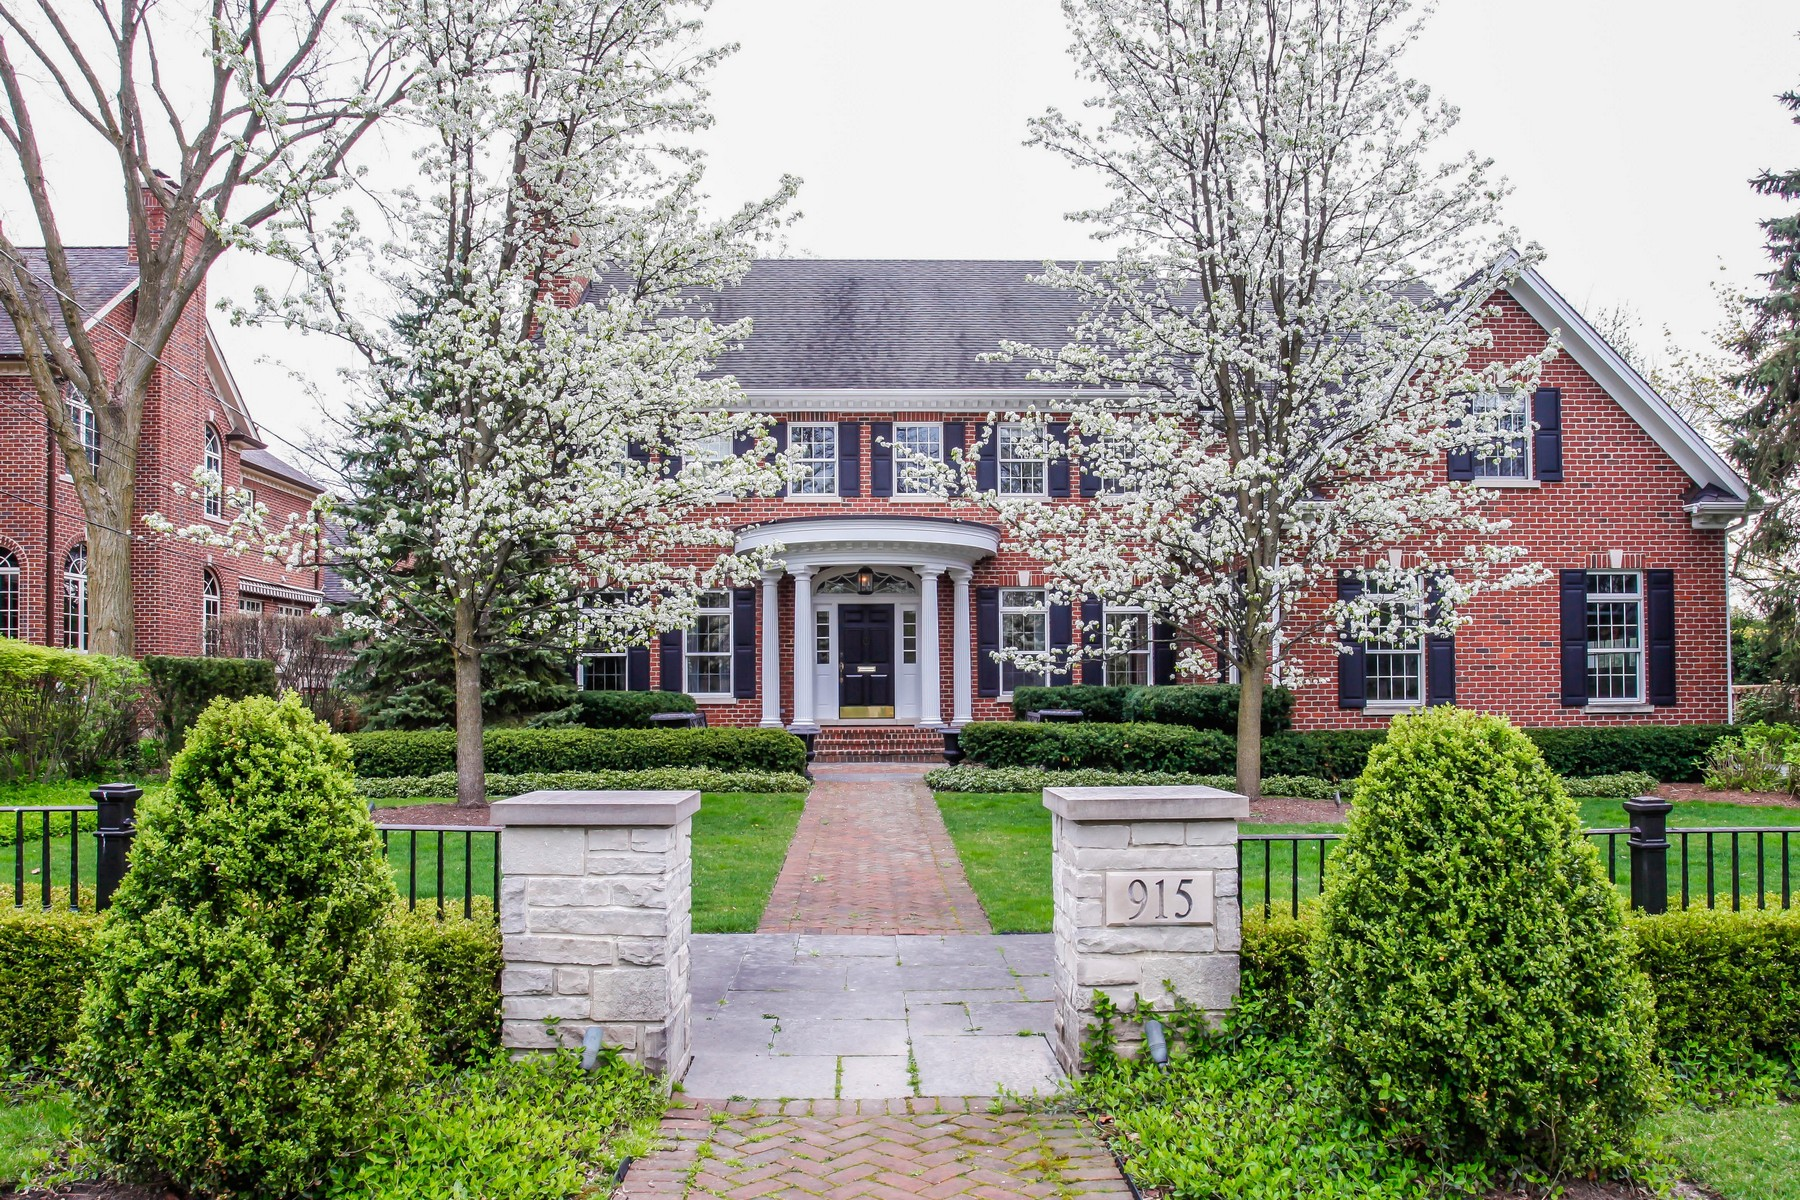 Single Family Home for Sale at 915 S. Elm 915 S. Elm St. Hinsdale, Illinois 60521 United States